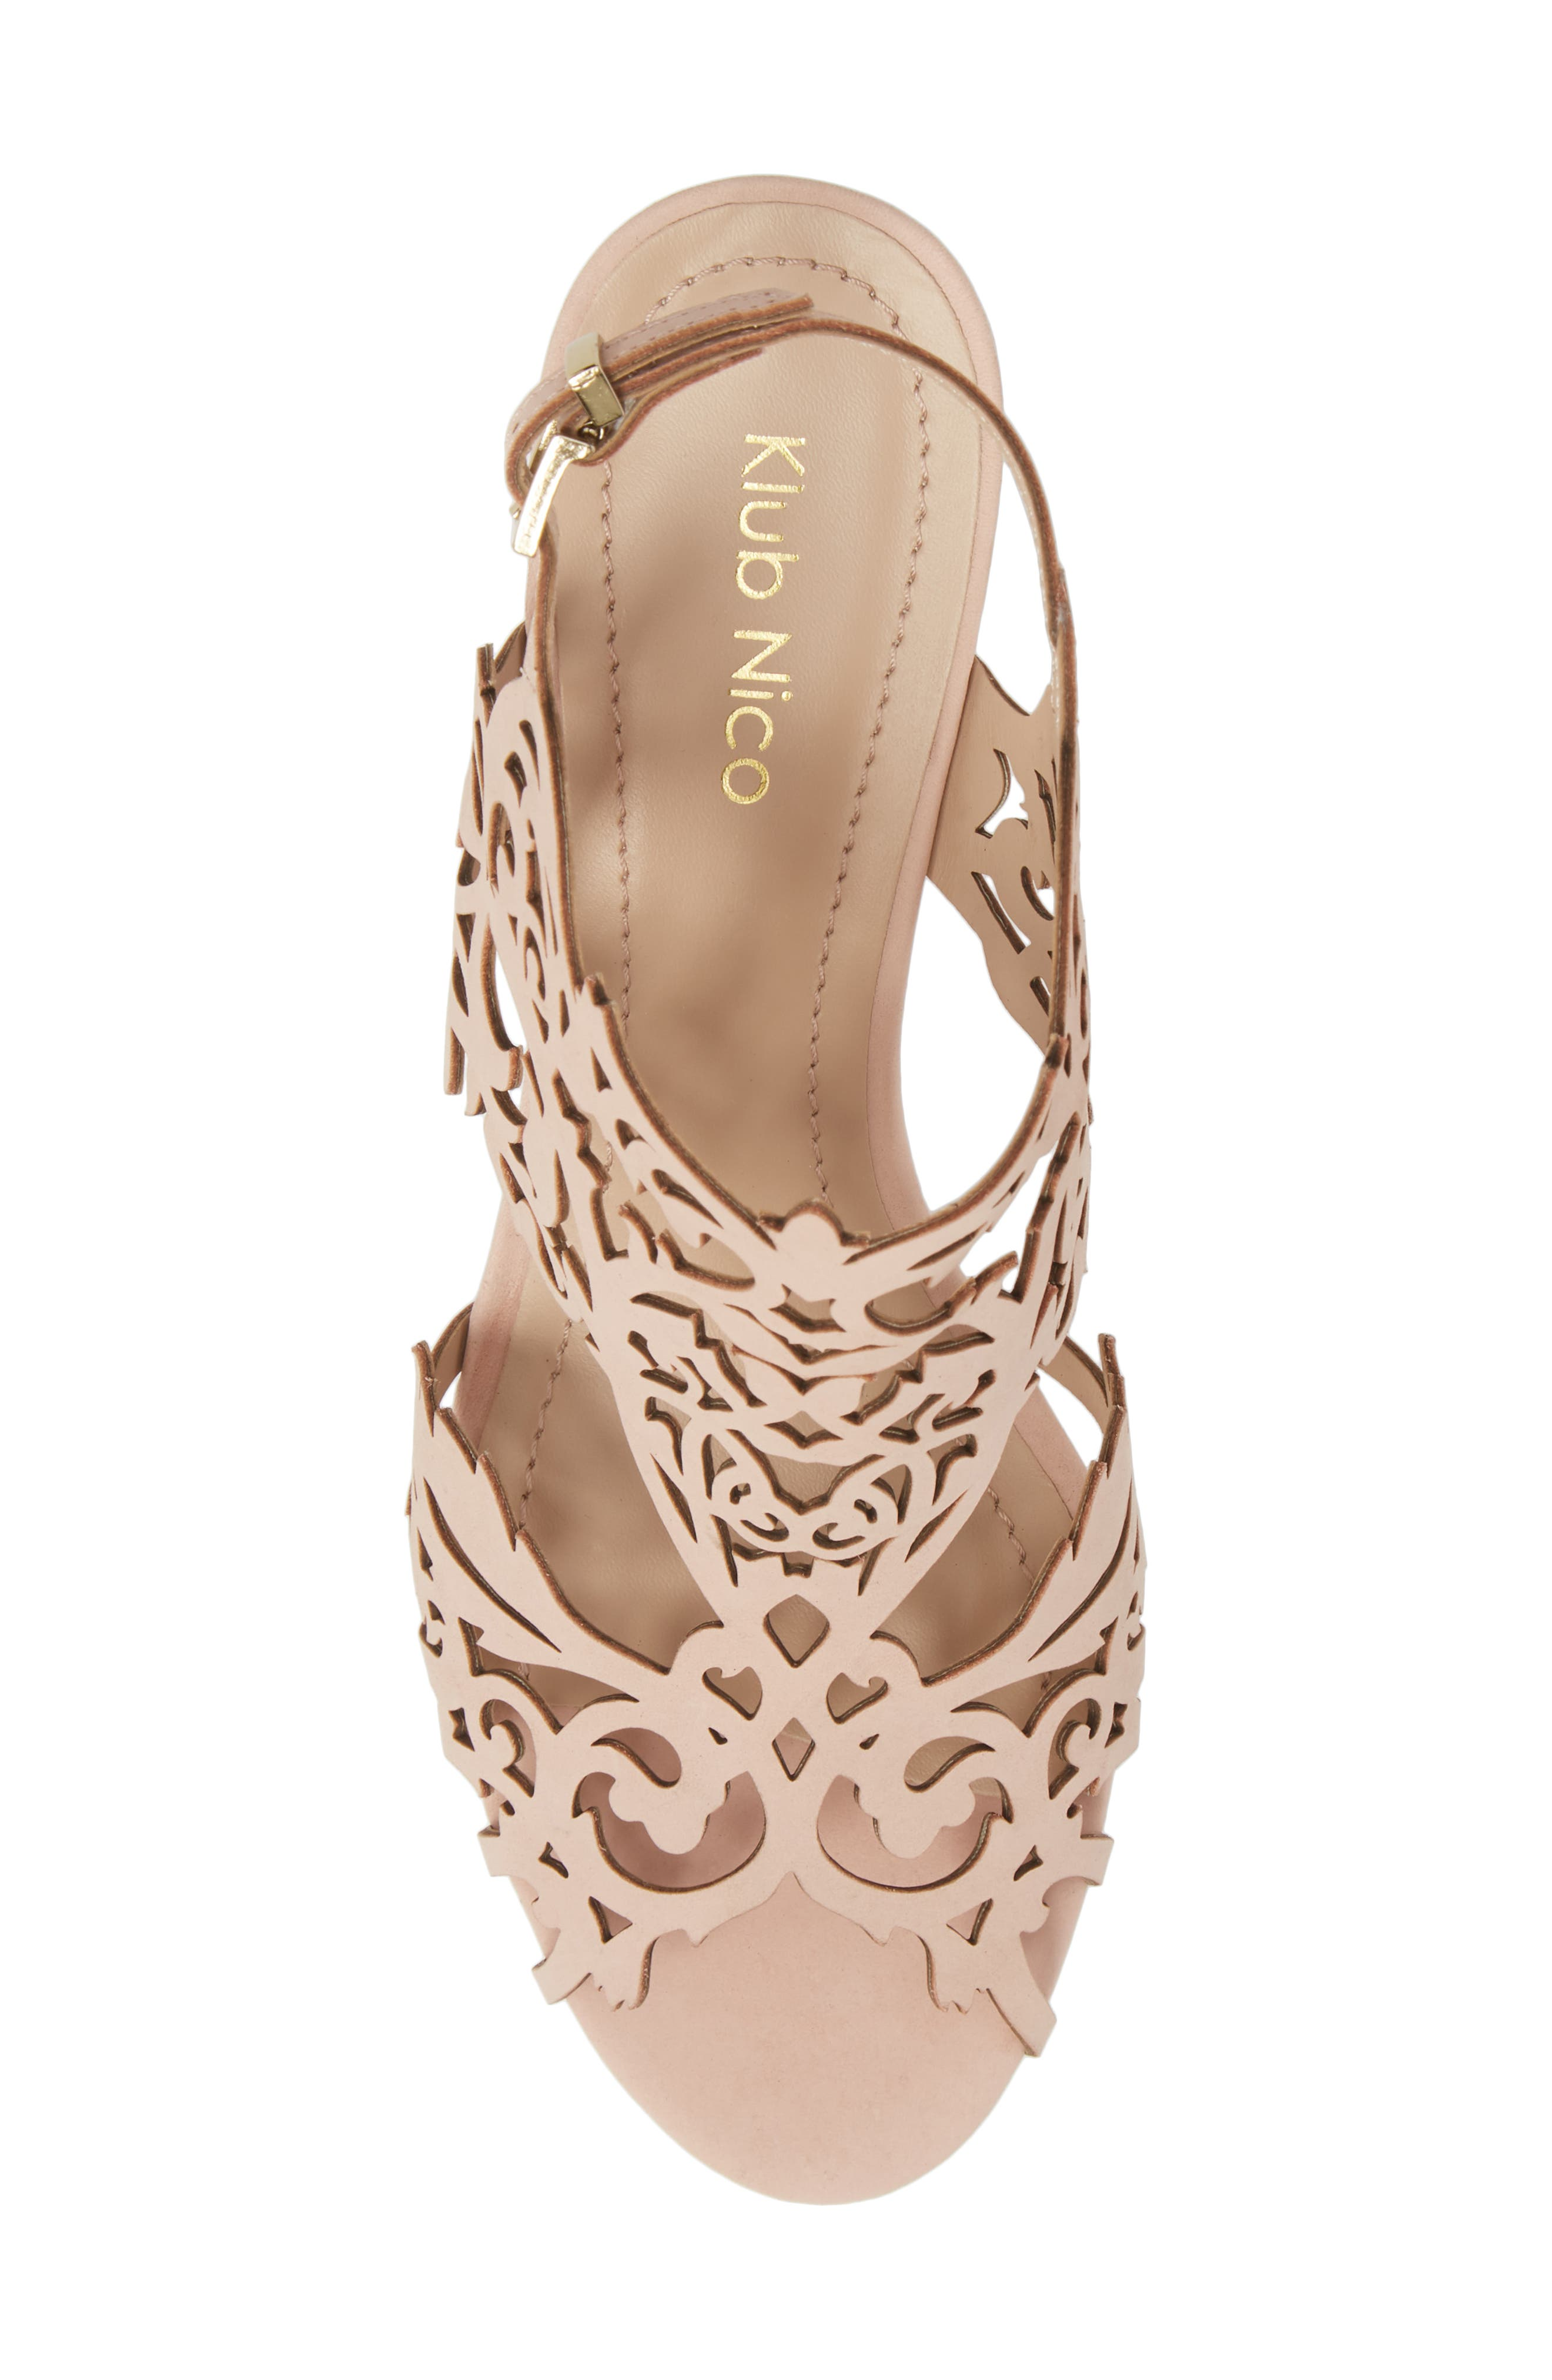 Marcela Laser Cutout Wedge Sandal,                             Alternate thumbnail 5, color,                             Blush Leather